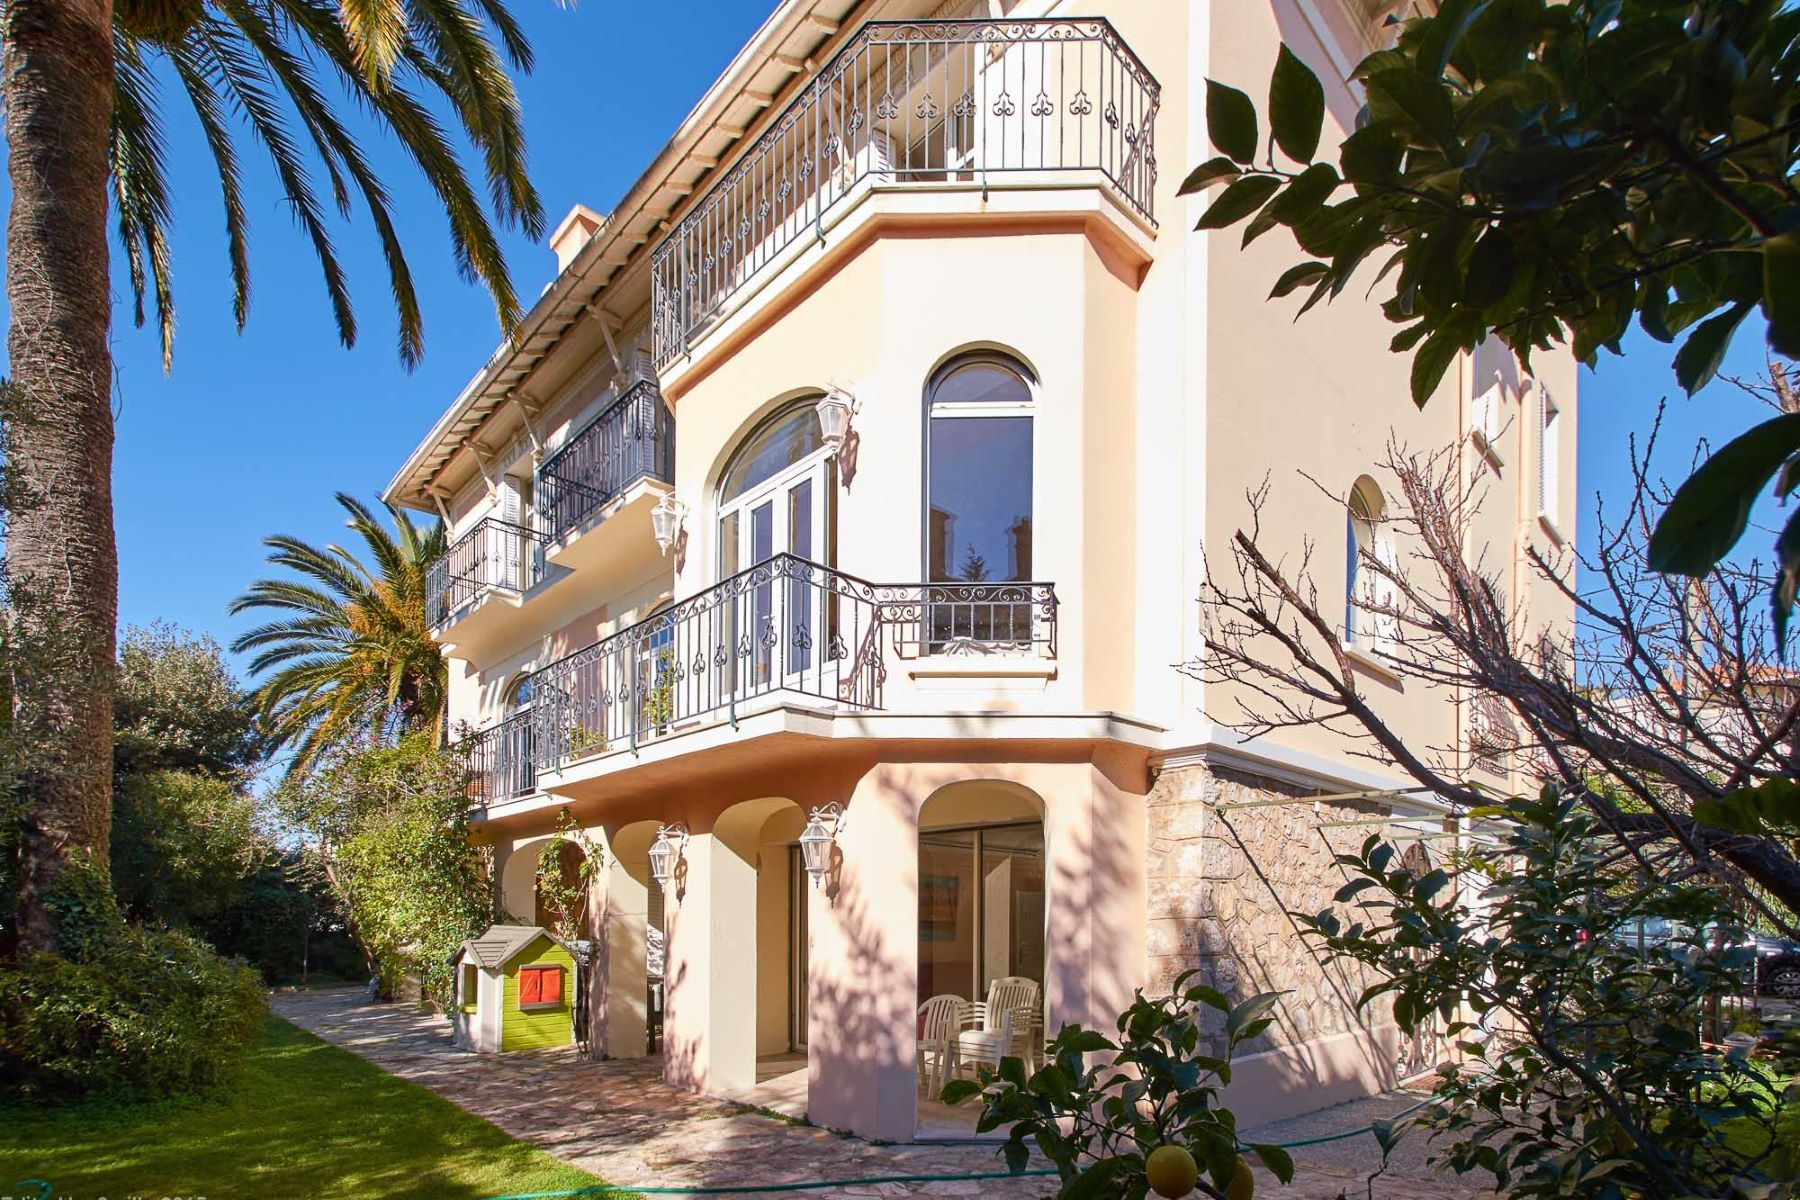 Property for Sale at Superb mansion in Cannes Cannes, Provence-Alpes-Cote D'Azur 06400 France